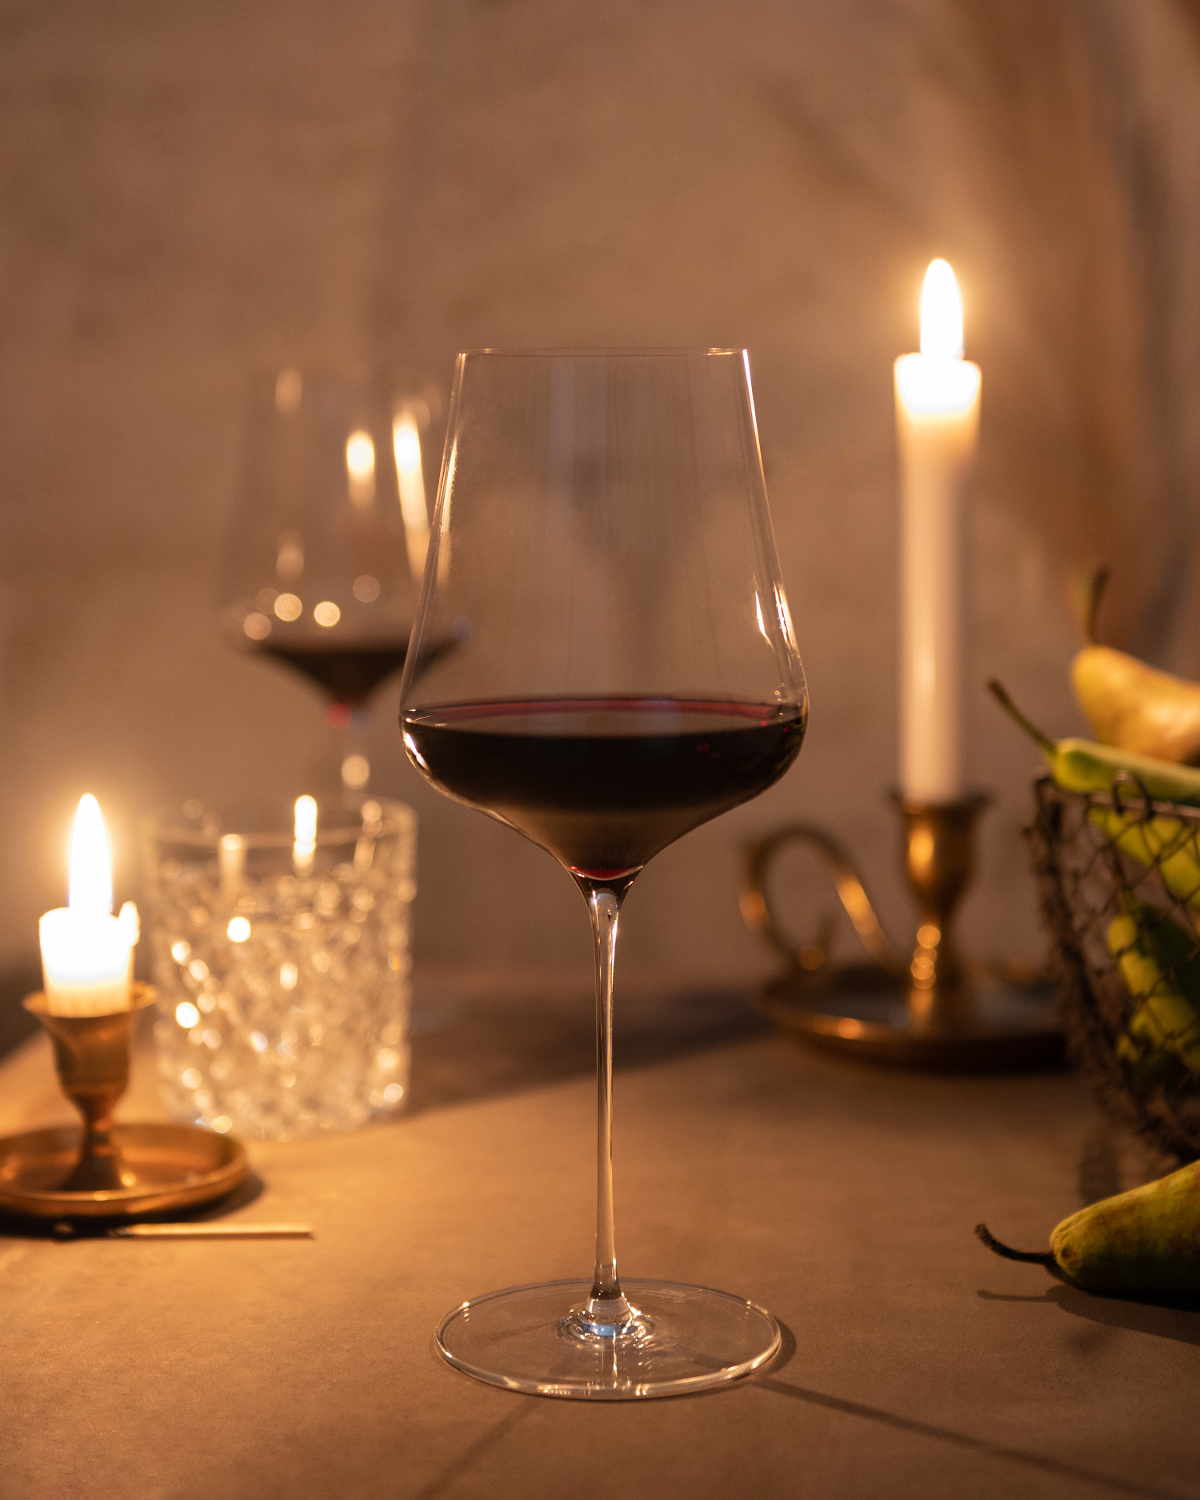 commercial wine photographer